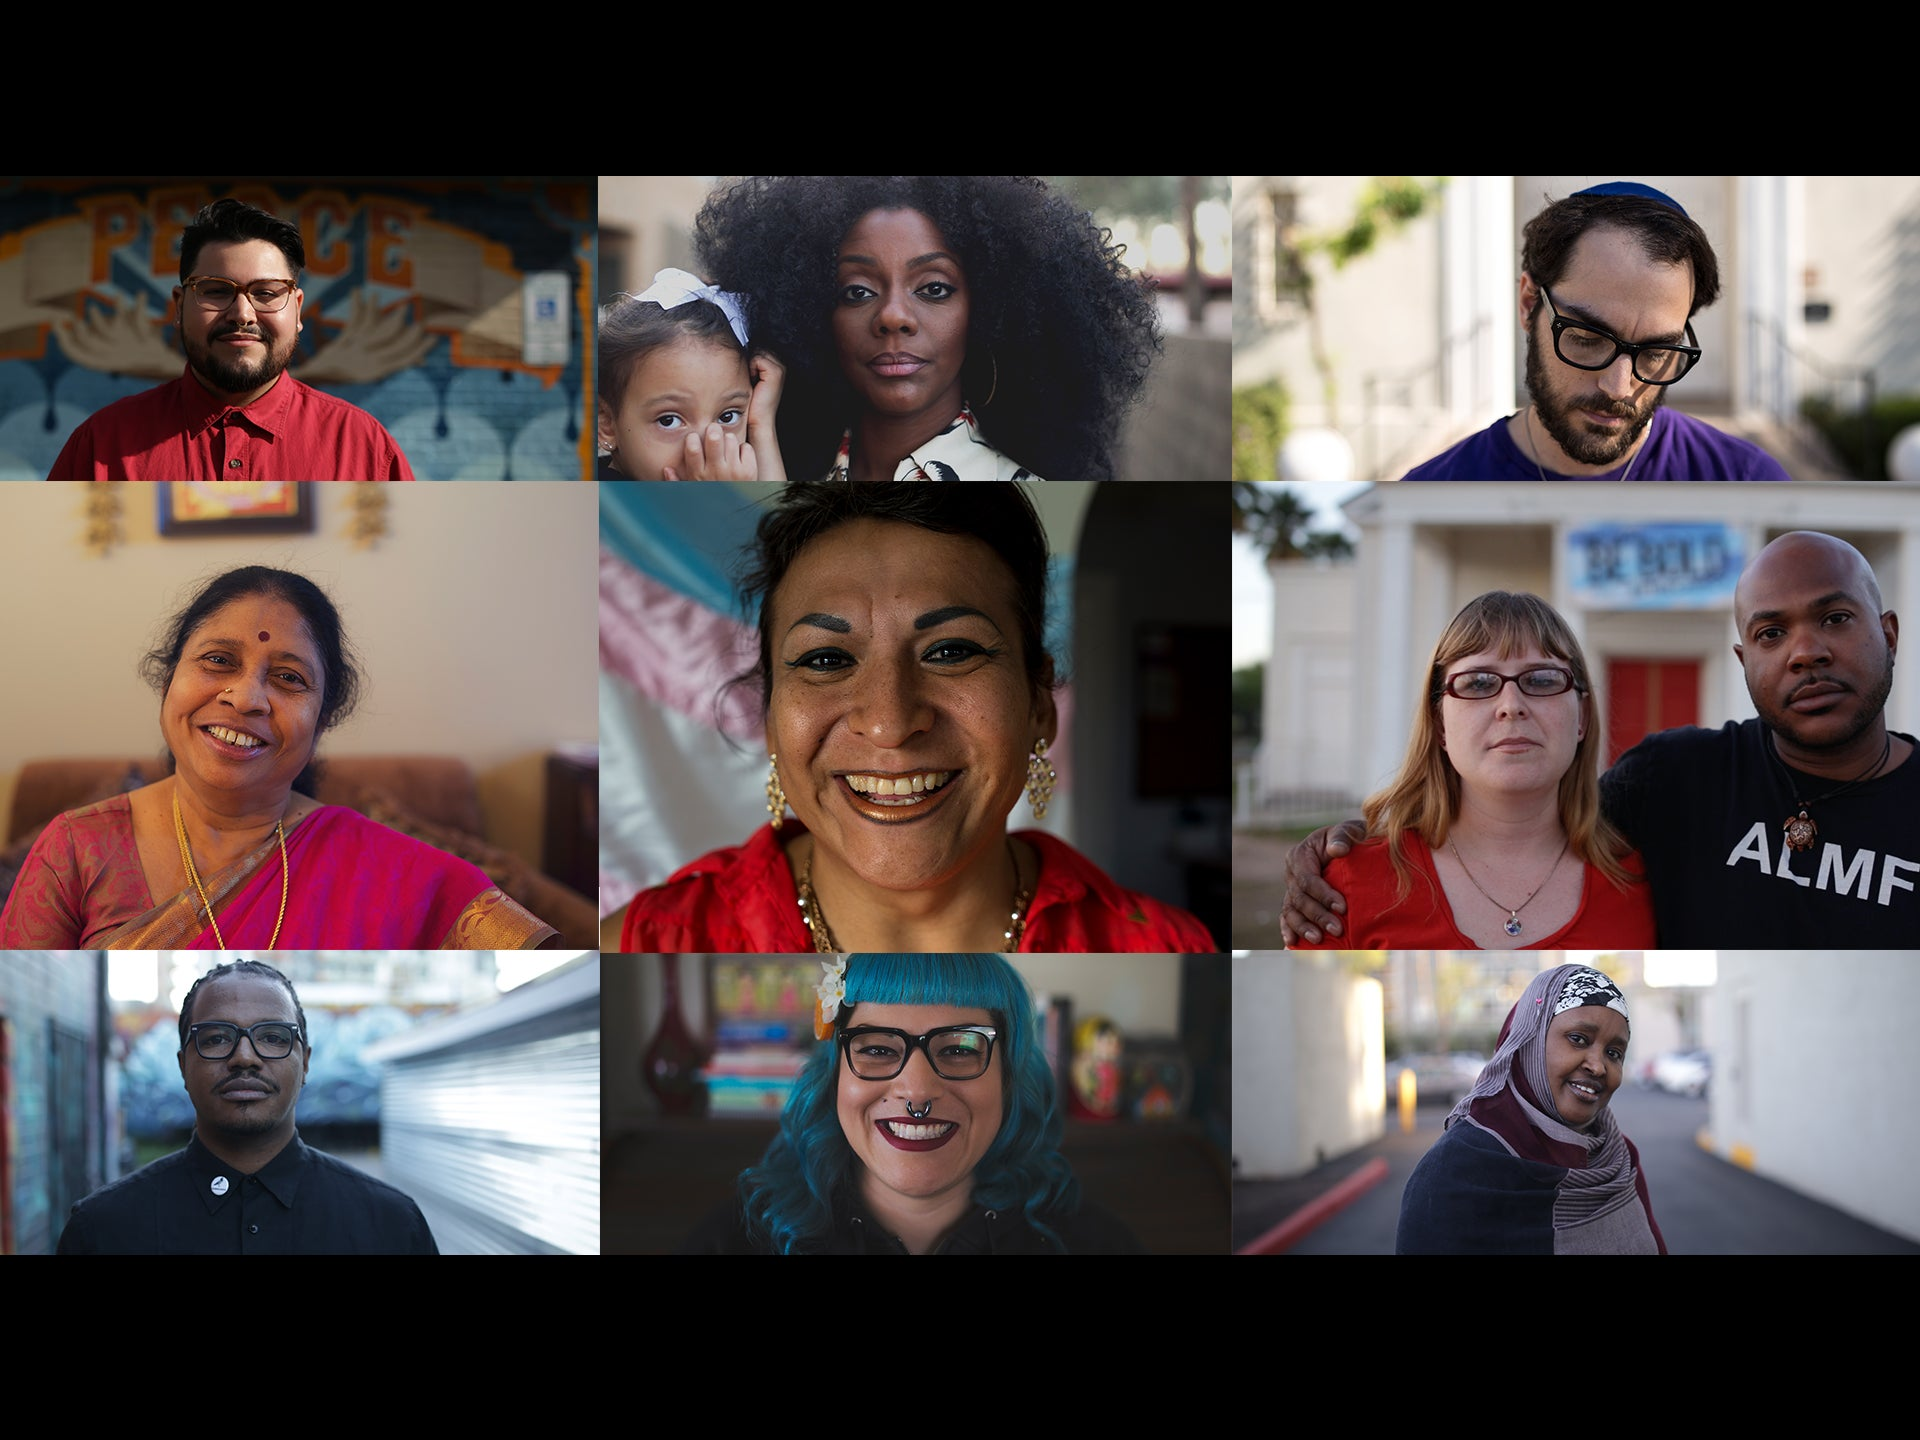 Collage of portraits of diverse people